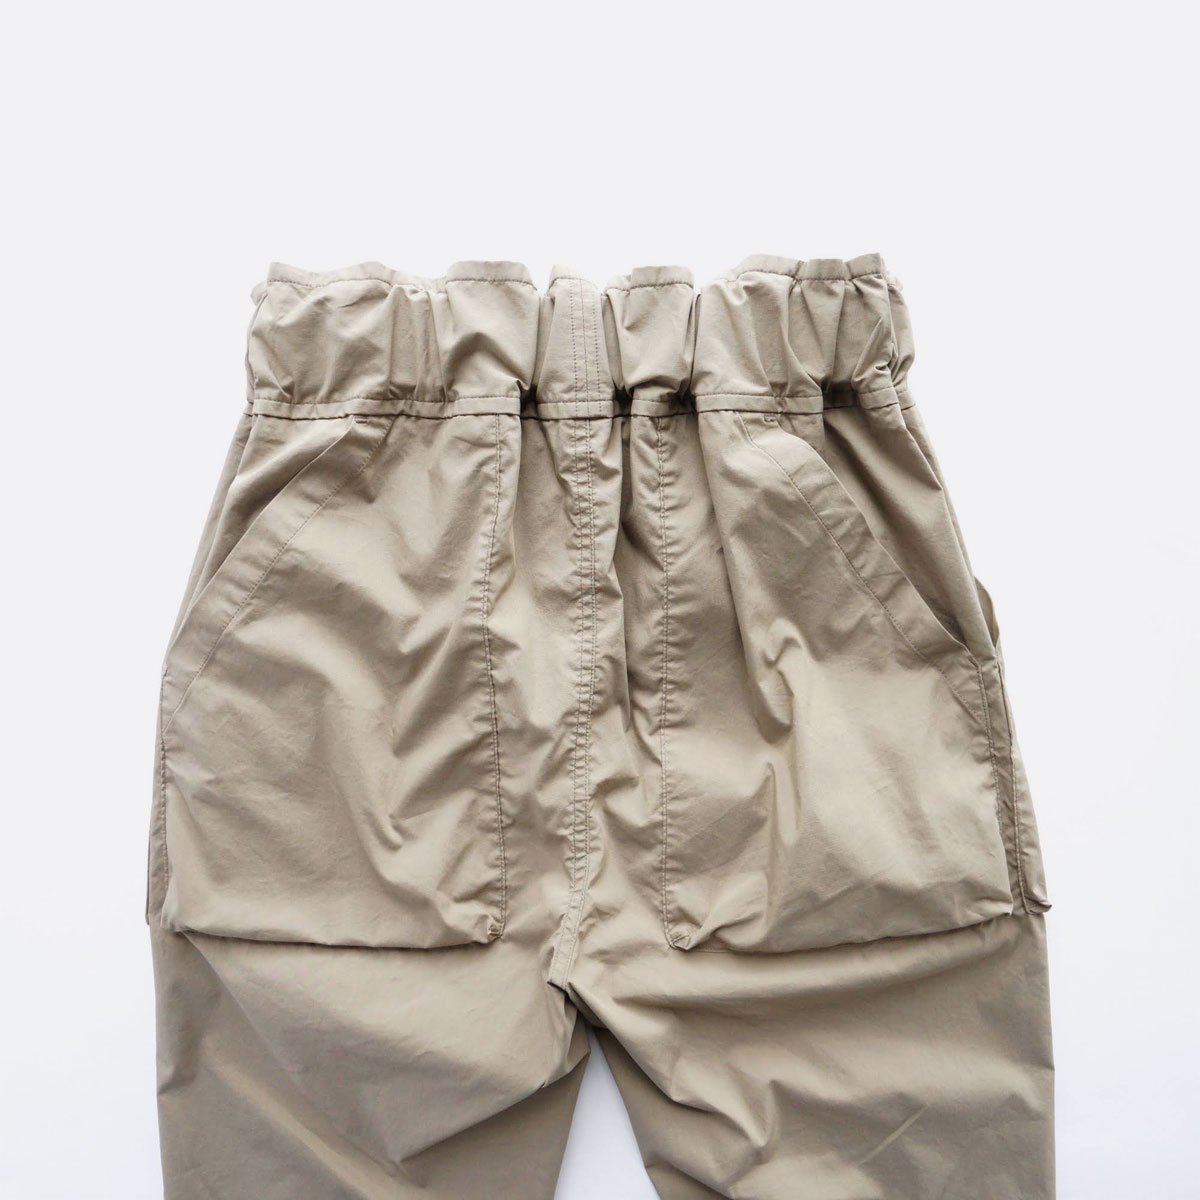 FIRMUM COTTON & POLYESTER STRETCH TYPEWRITER EASY TAPERED PANTS (LIGHT KHAKI)4